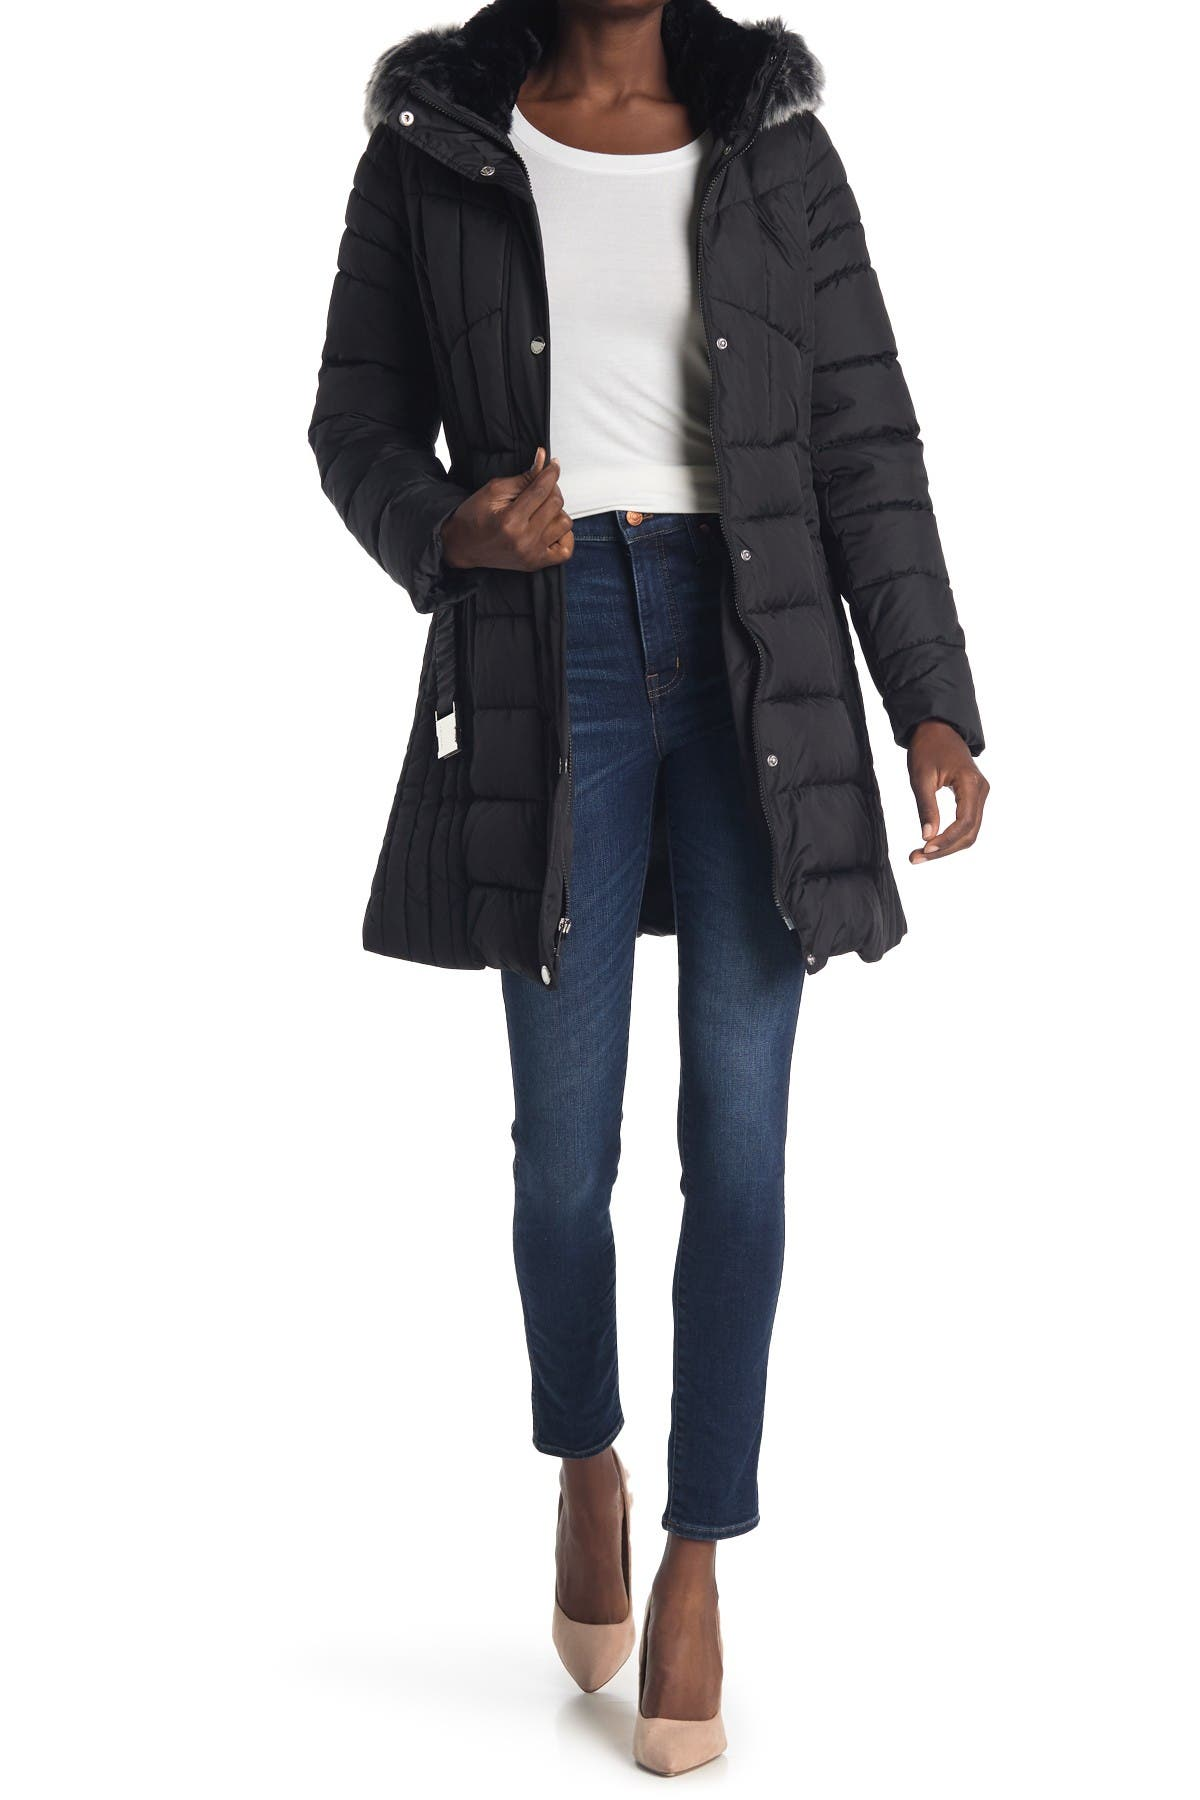 Image of Laundry By Shelli Segal Faux Fur Trimmed Belted Puffer Jacket